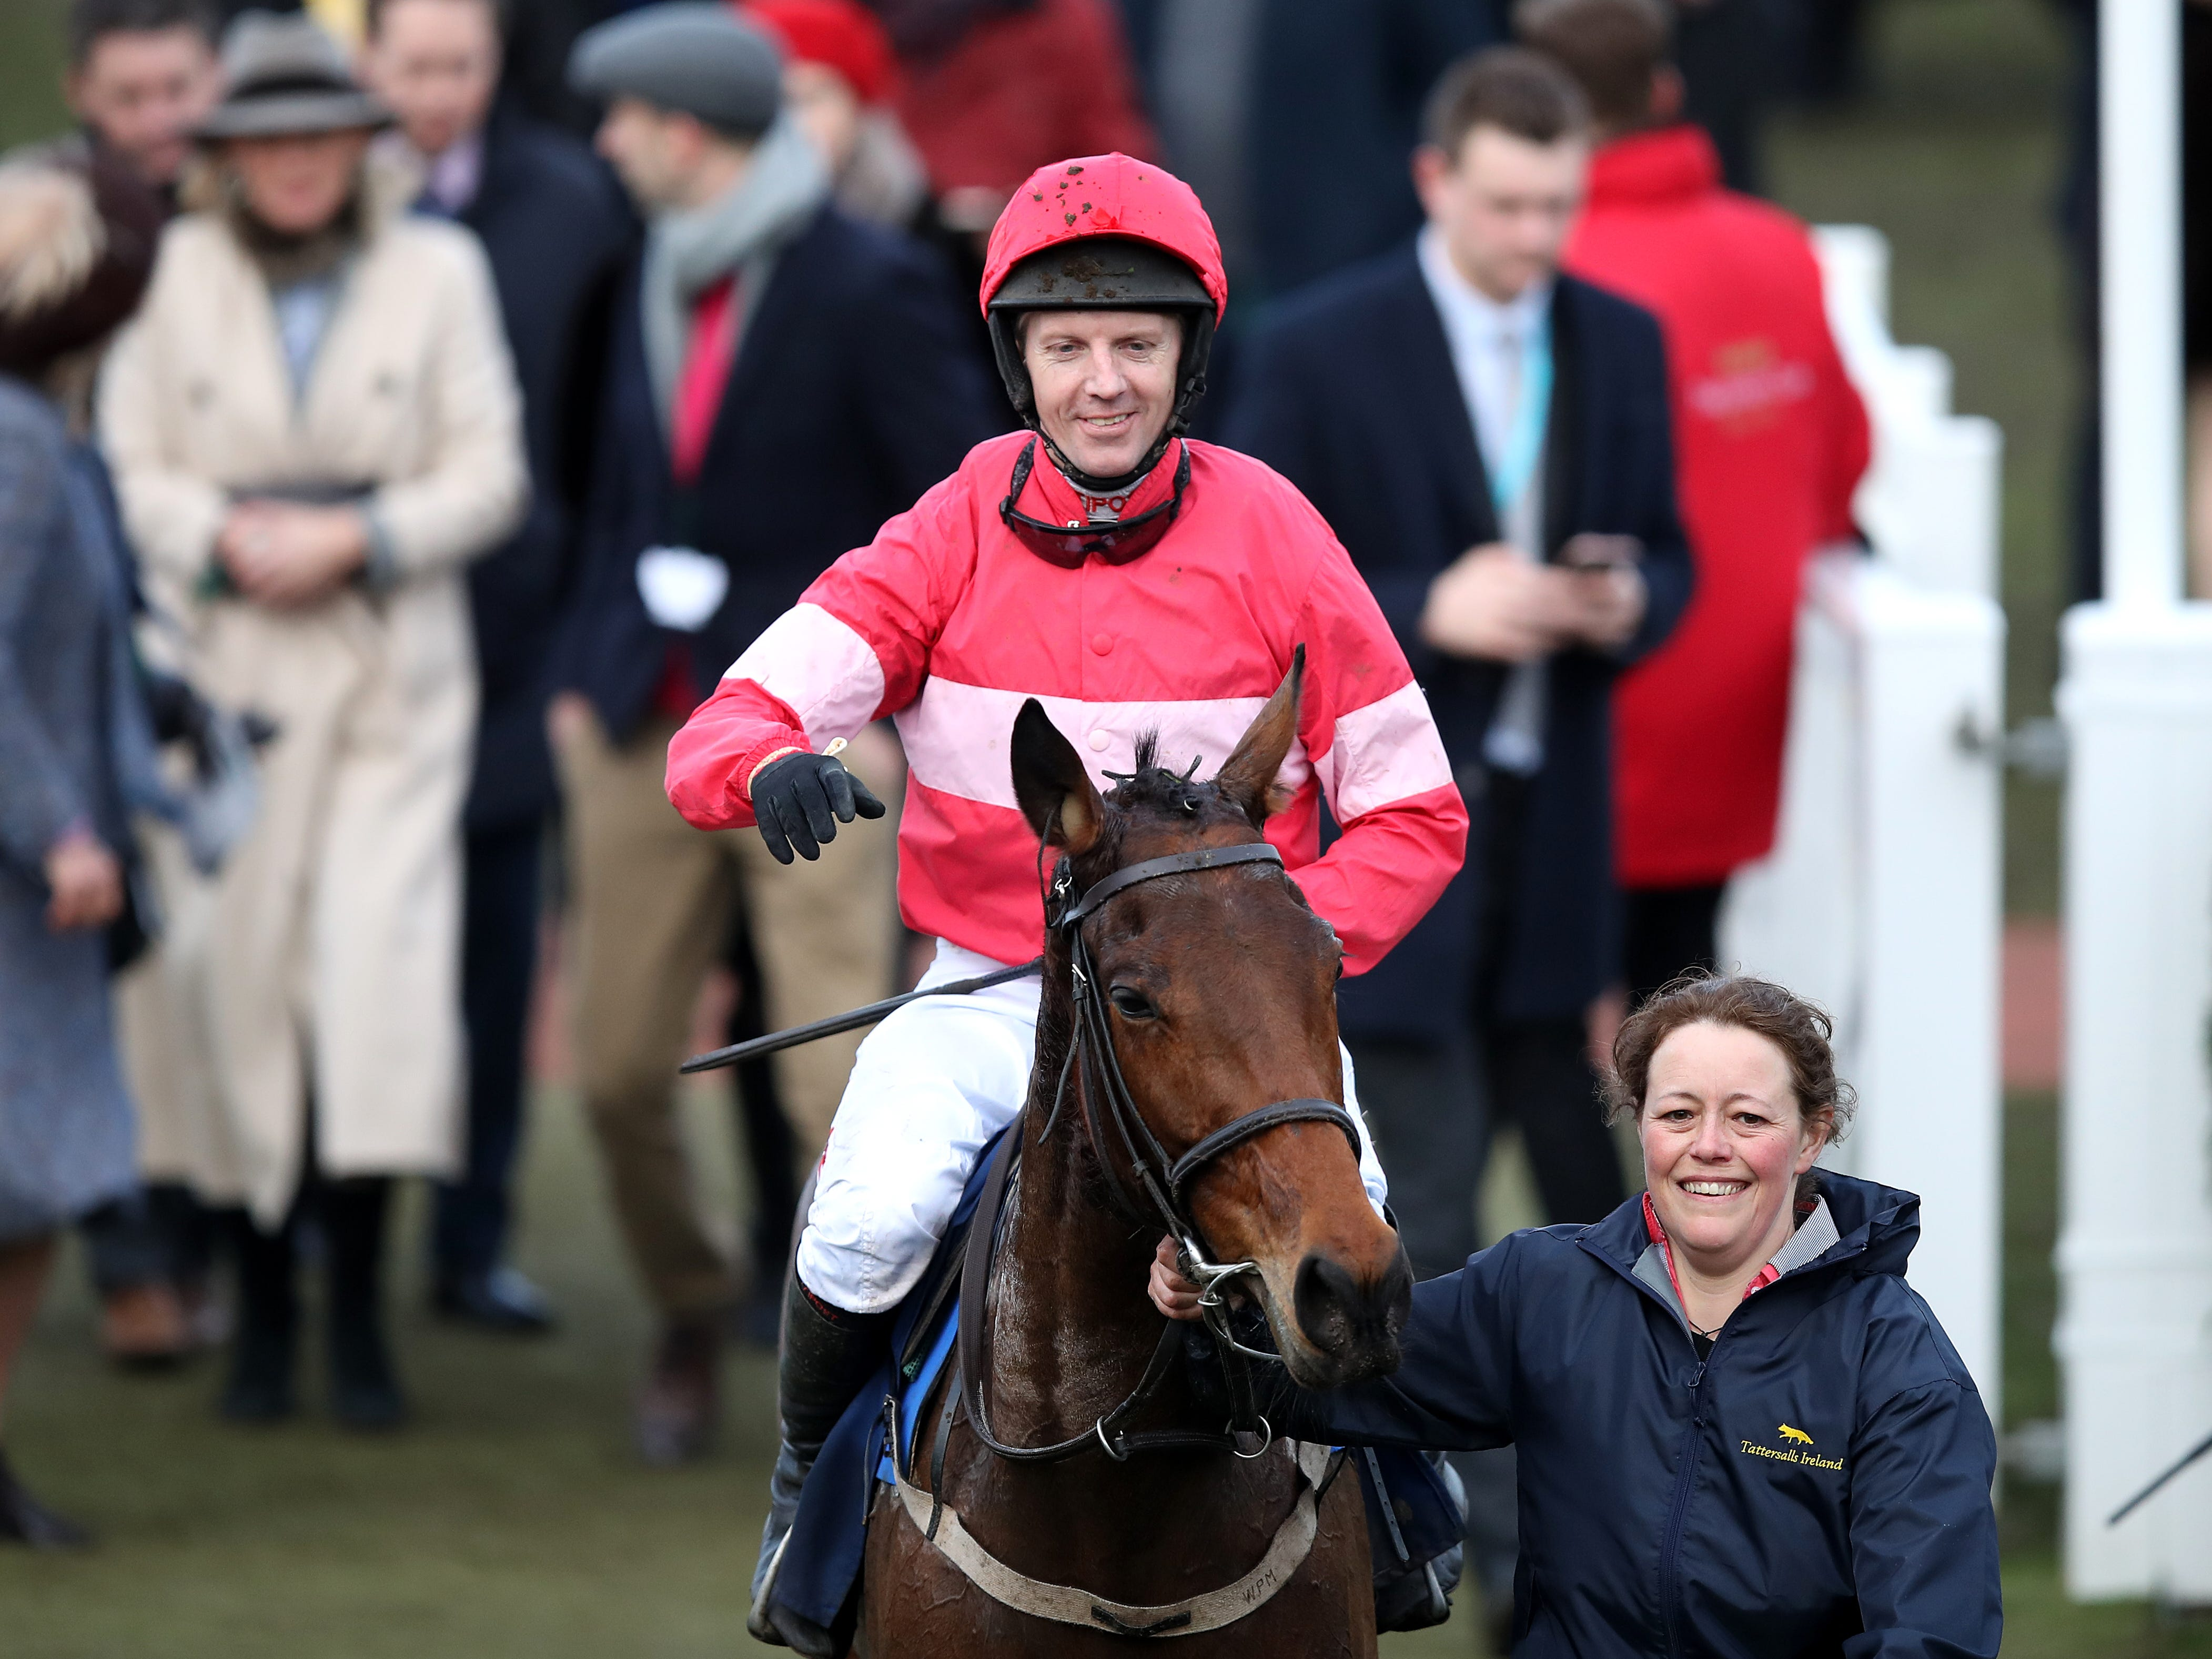 Noel Fehily celebrates on Eglantine Du Seuil after winning the National Hunt Breeders Supported By Tattersalls Mares' Novices' Hurdle during St Patrick's Thursday of the 2019 Cheltenham Festival at Cheltenham Racecourse.